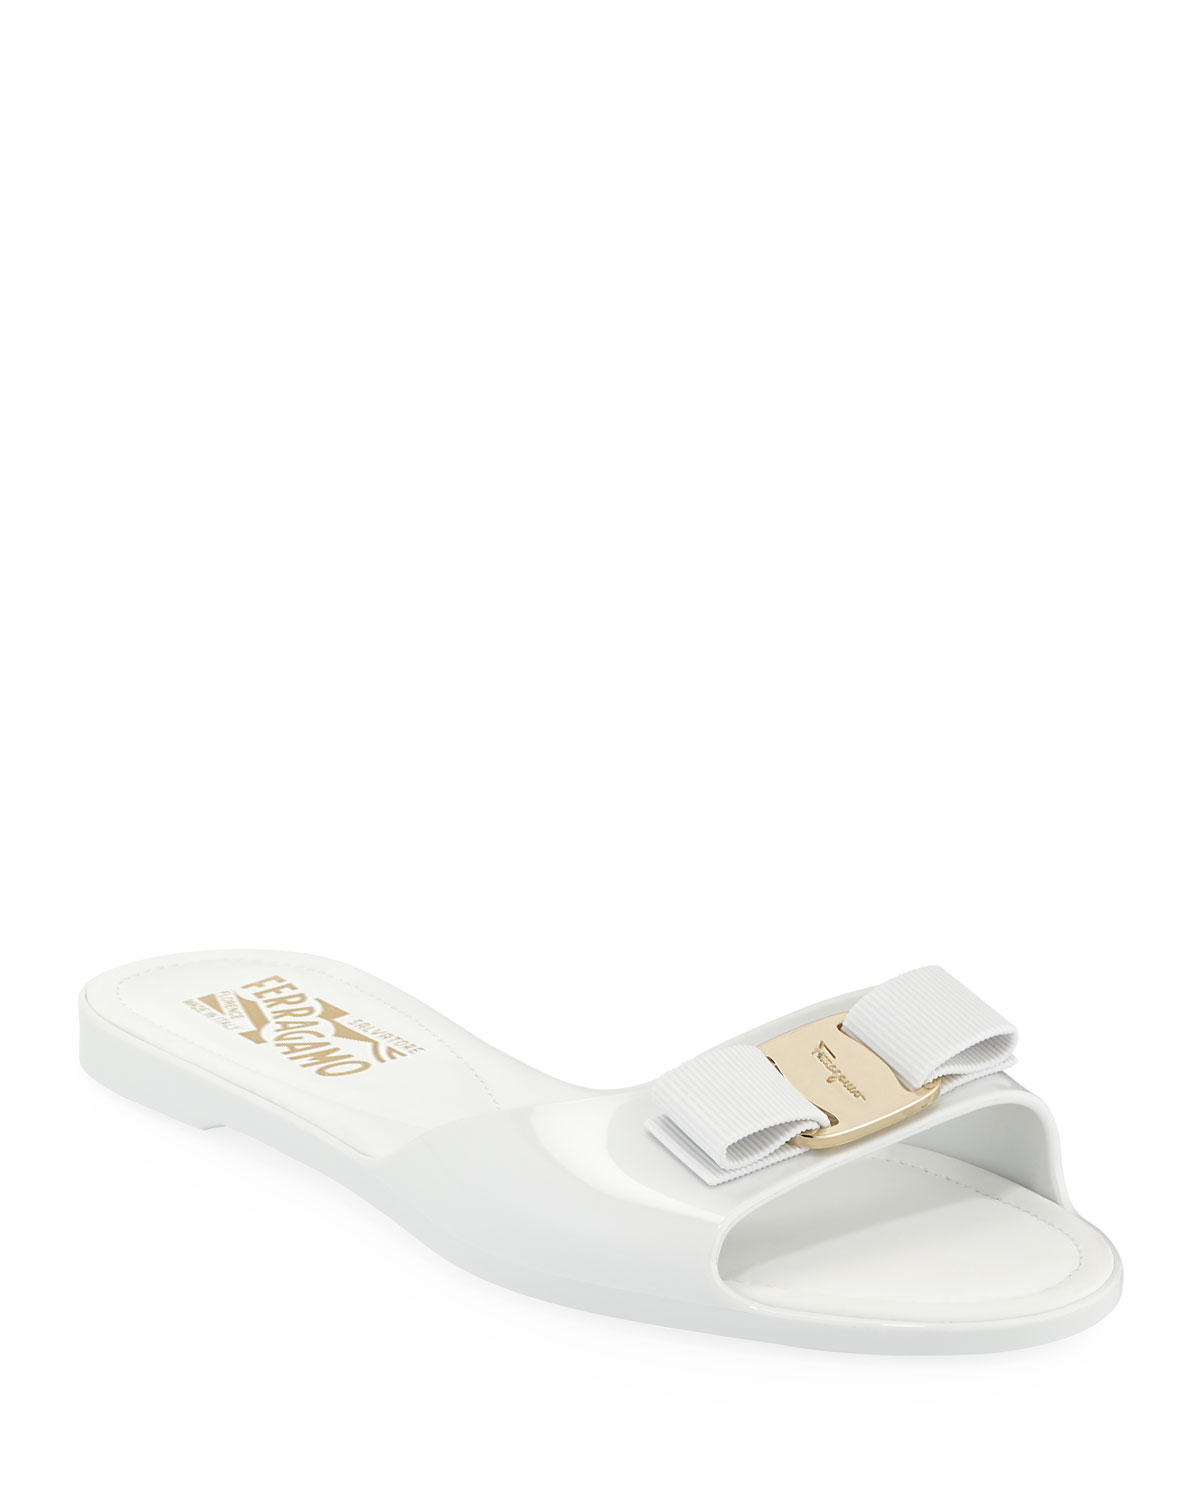 7040c075c3b Salvatore Ferragamo Cirella Flat PVC Jelly Bow Slide Sandals